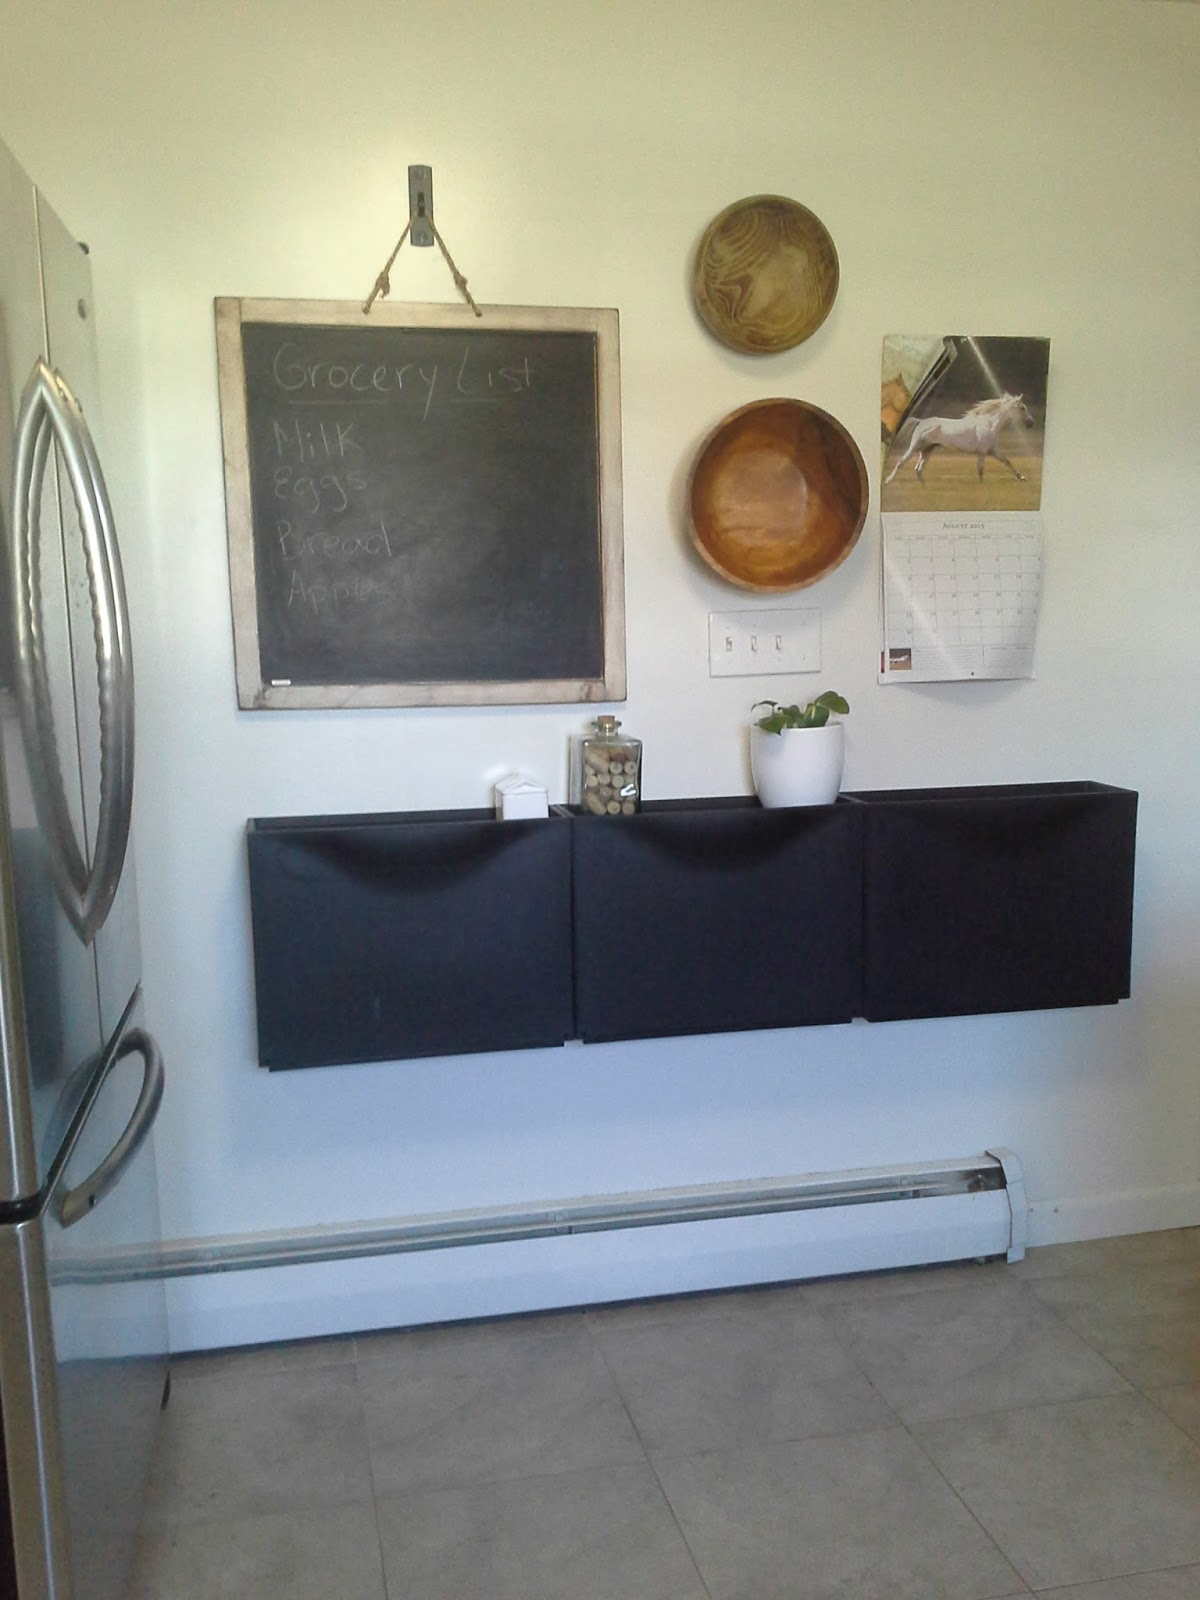 Ikea Trones In The Kitchen For Recycling, Stainless Steel Refrigerator DIY  Chalkboard